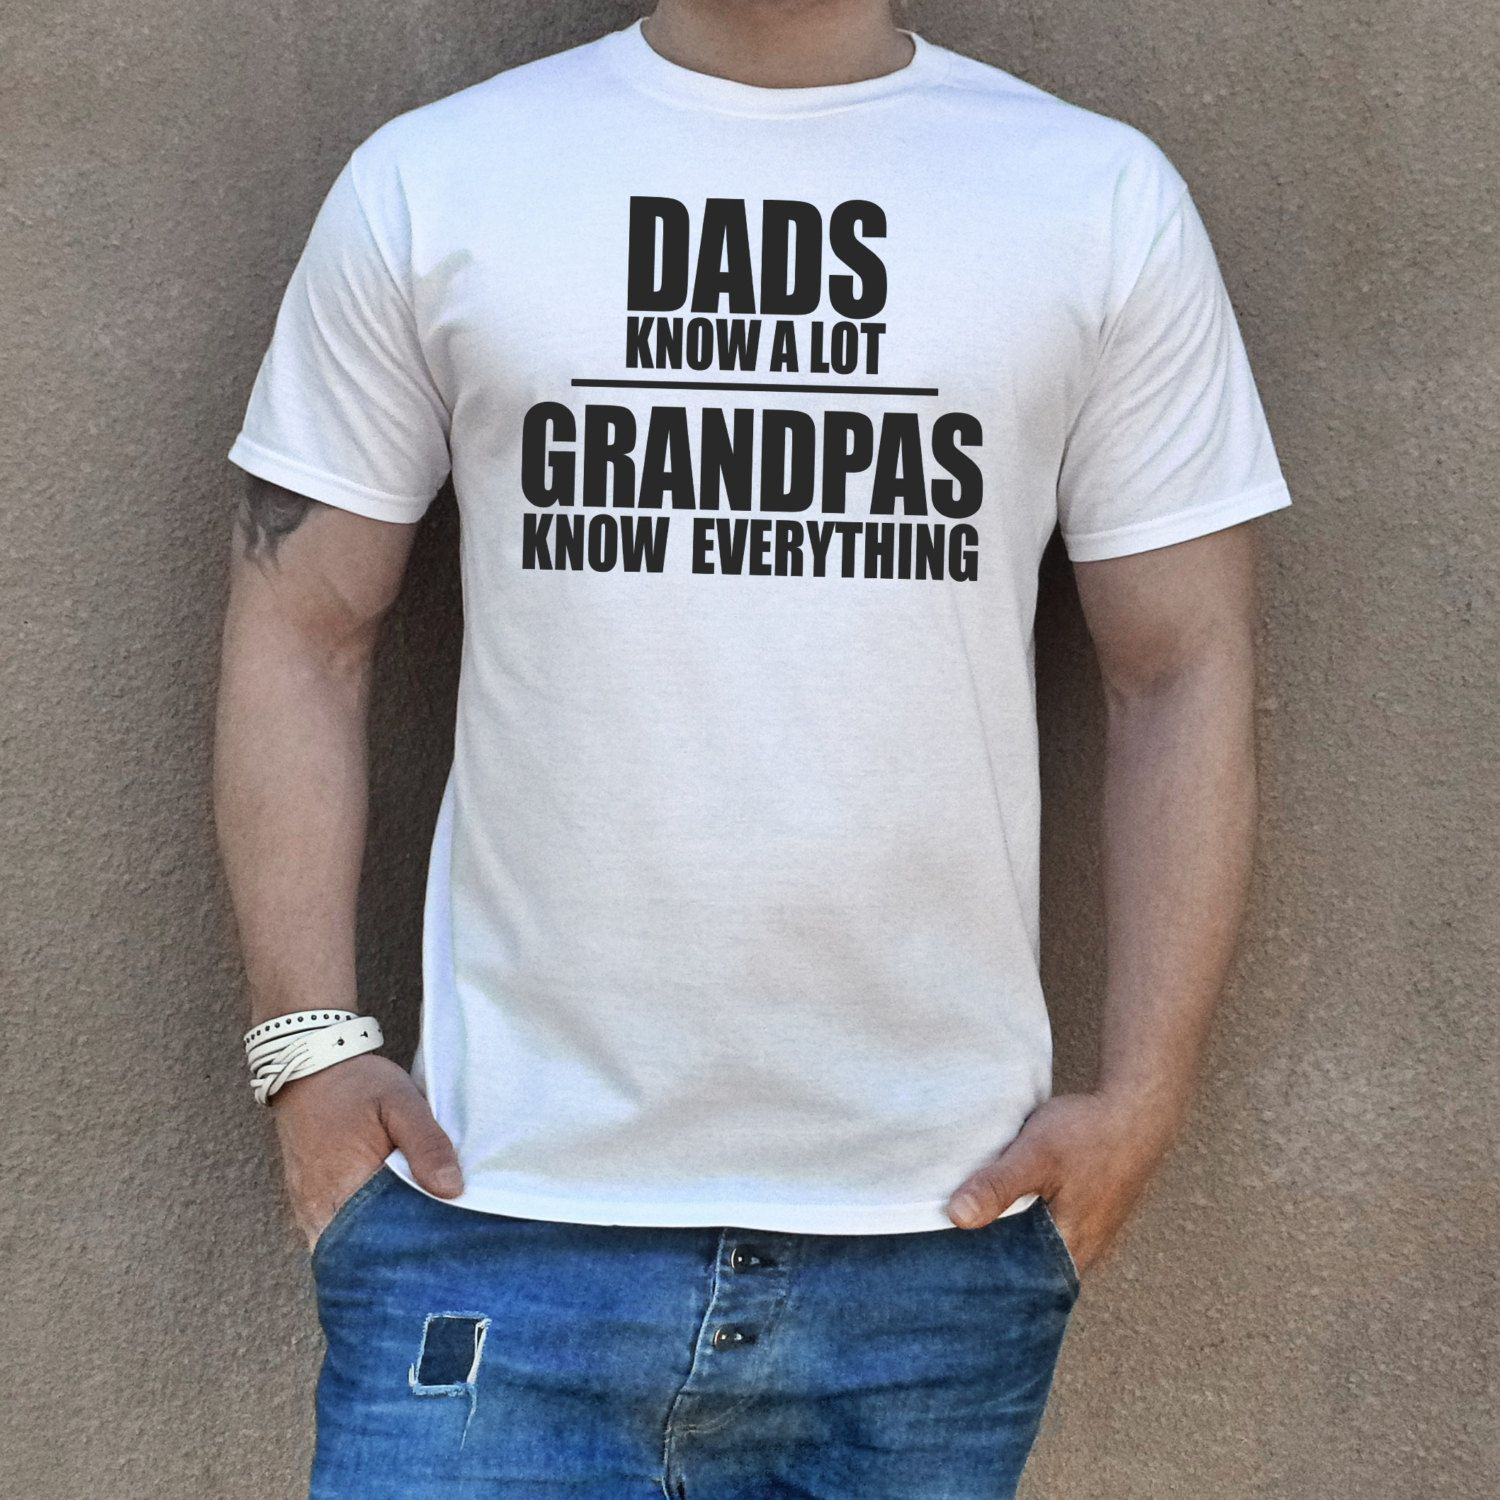 e2db9d35 Grandpa T-shirt GRANDPAS KNOW EVERYTHING. Grandfather t shirt. Father's  Day. Birthday Gift Best Grandpa shirt Funny grandpa gift.